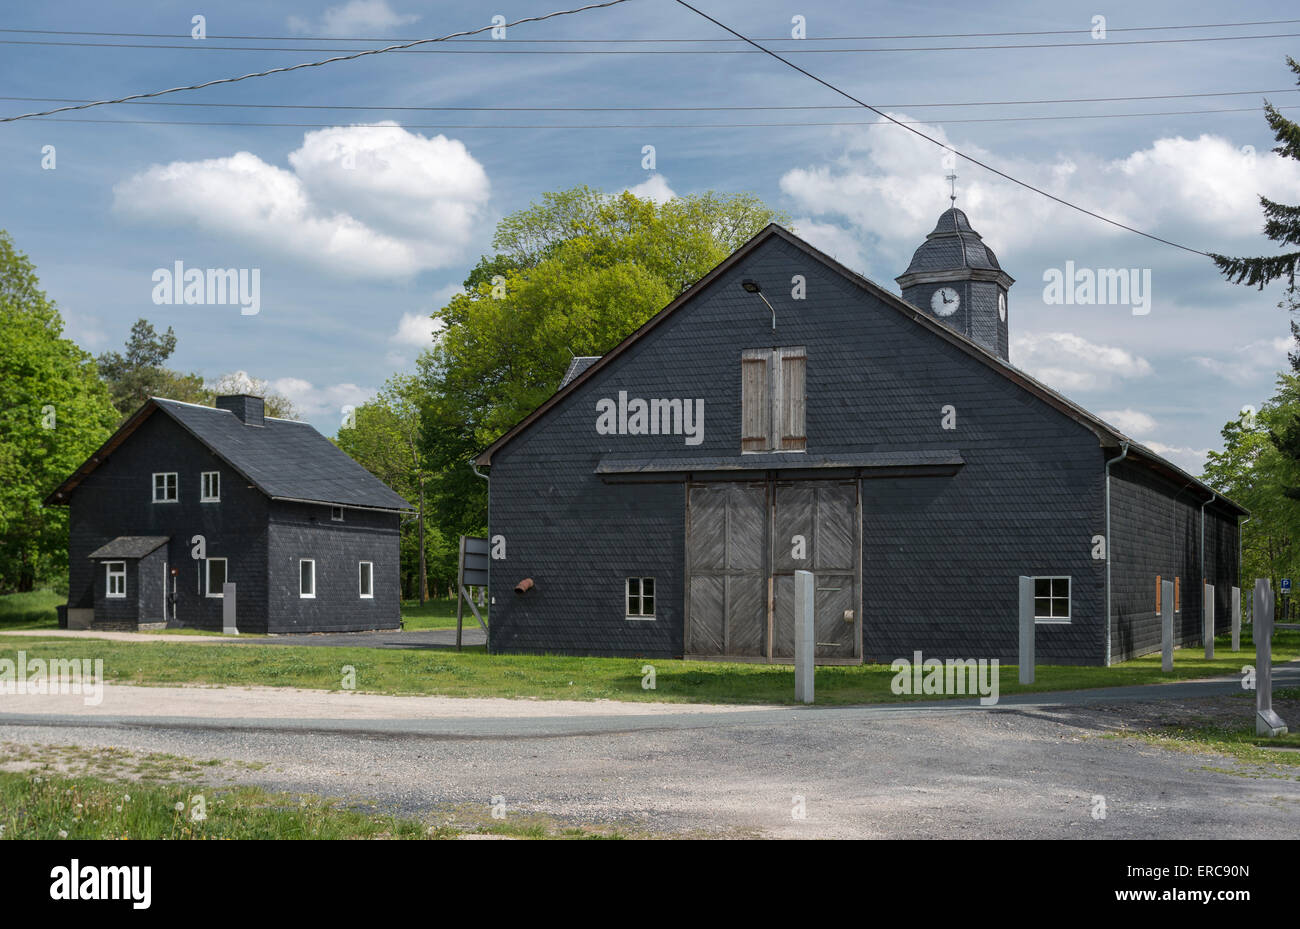 Barn, 1929, accommodation for 800 prisoners in the concentration camp Laura, 1943-1945 subcamp of the Buchenwald - Stock Image